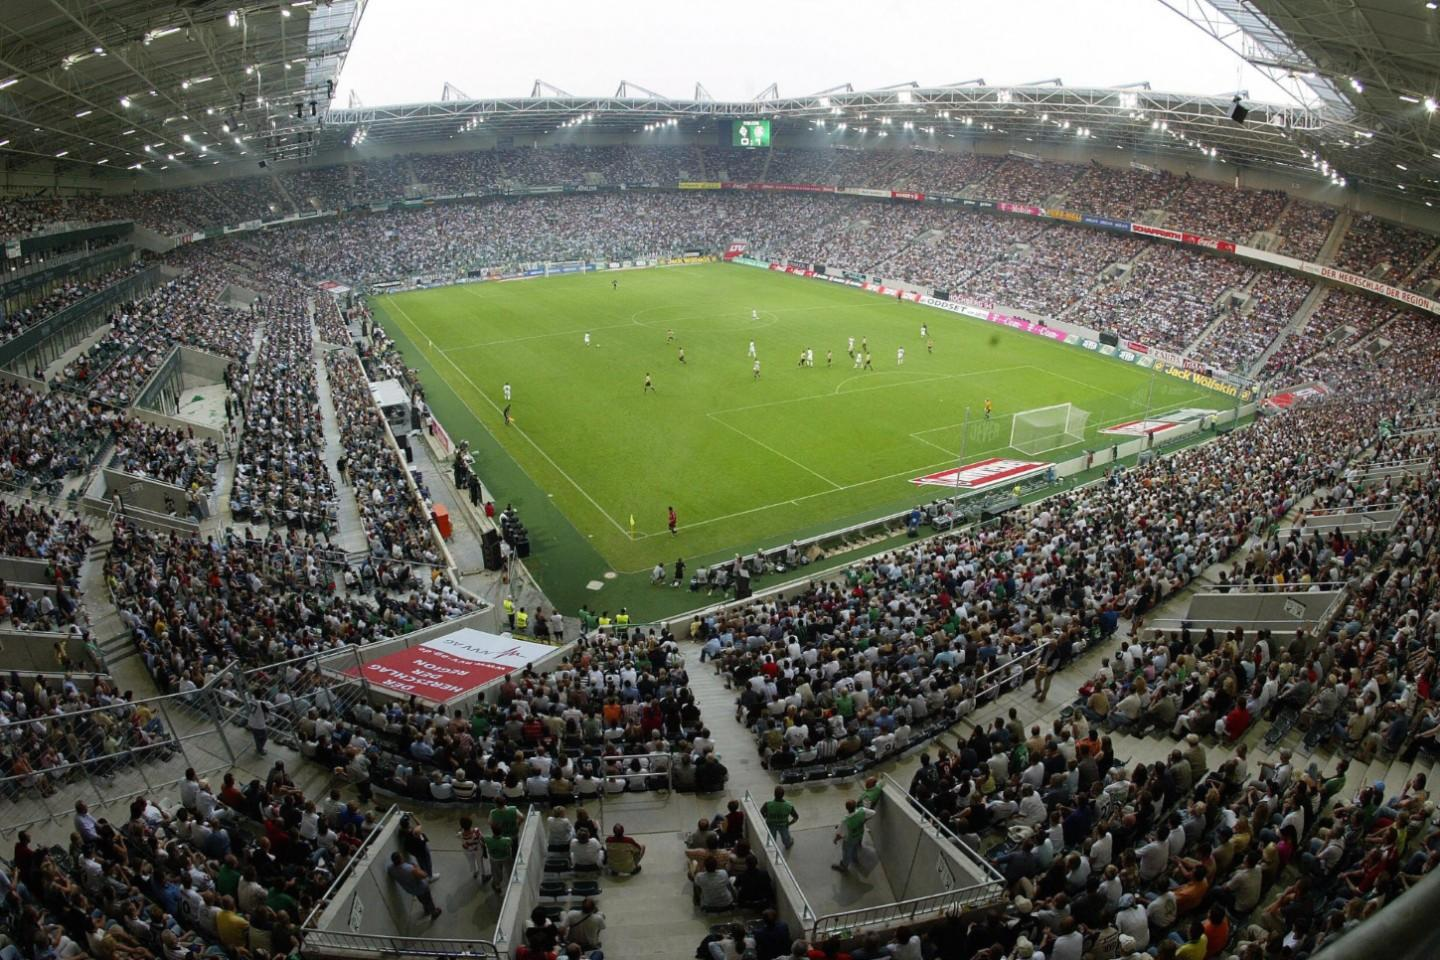 Borussia Monchengladbach Tickets Buy Or Sell Borussia